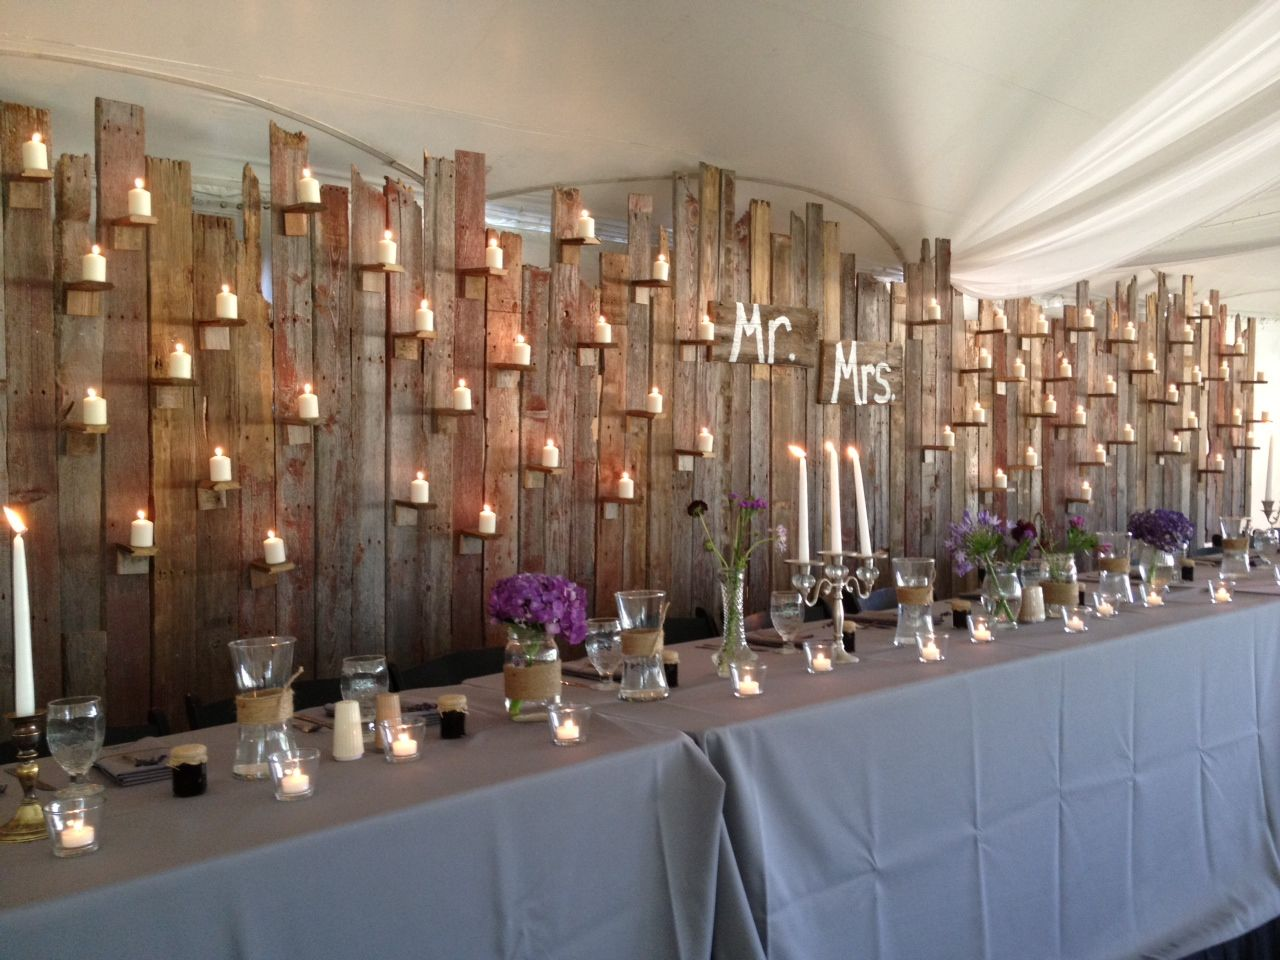 Lasting Impressions is a full service wedding